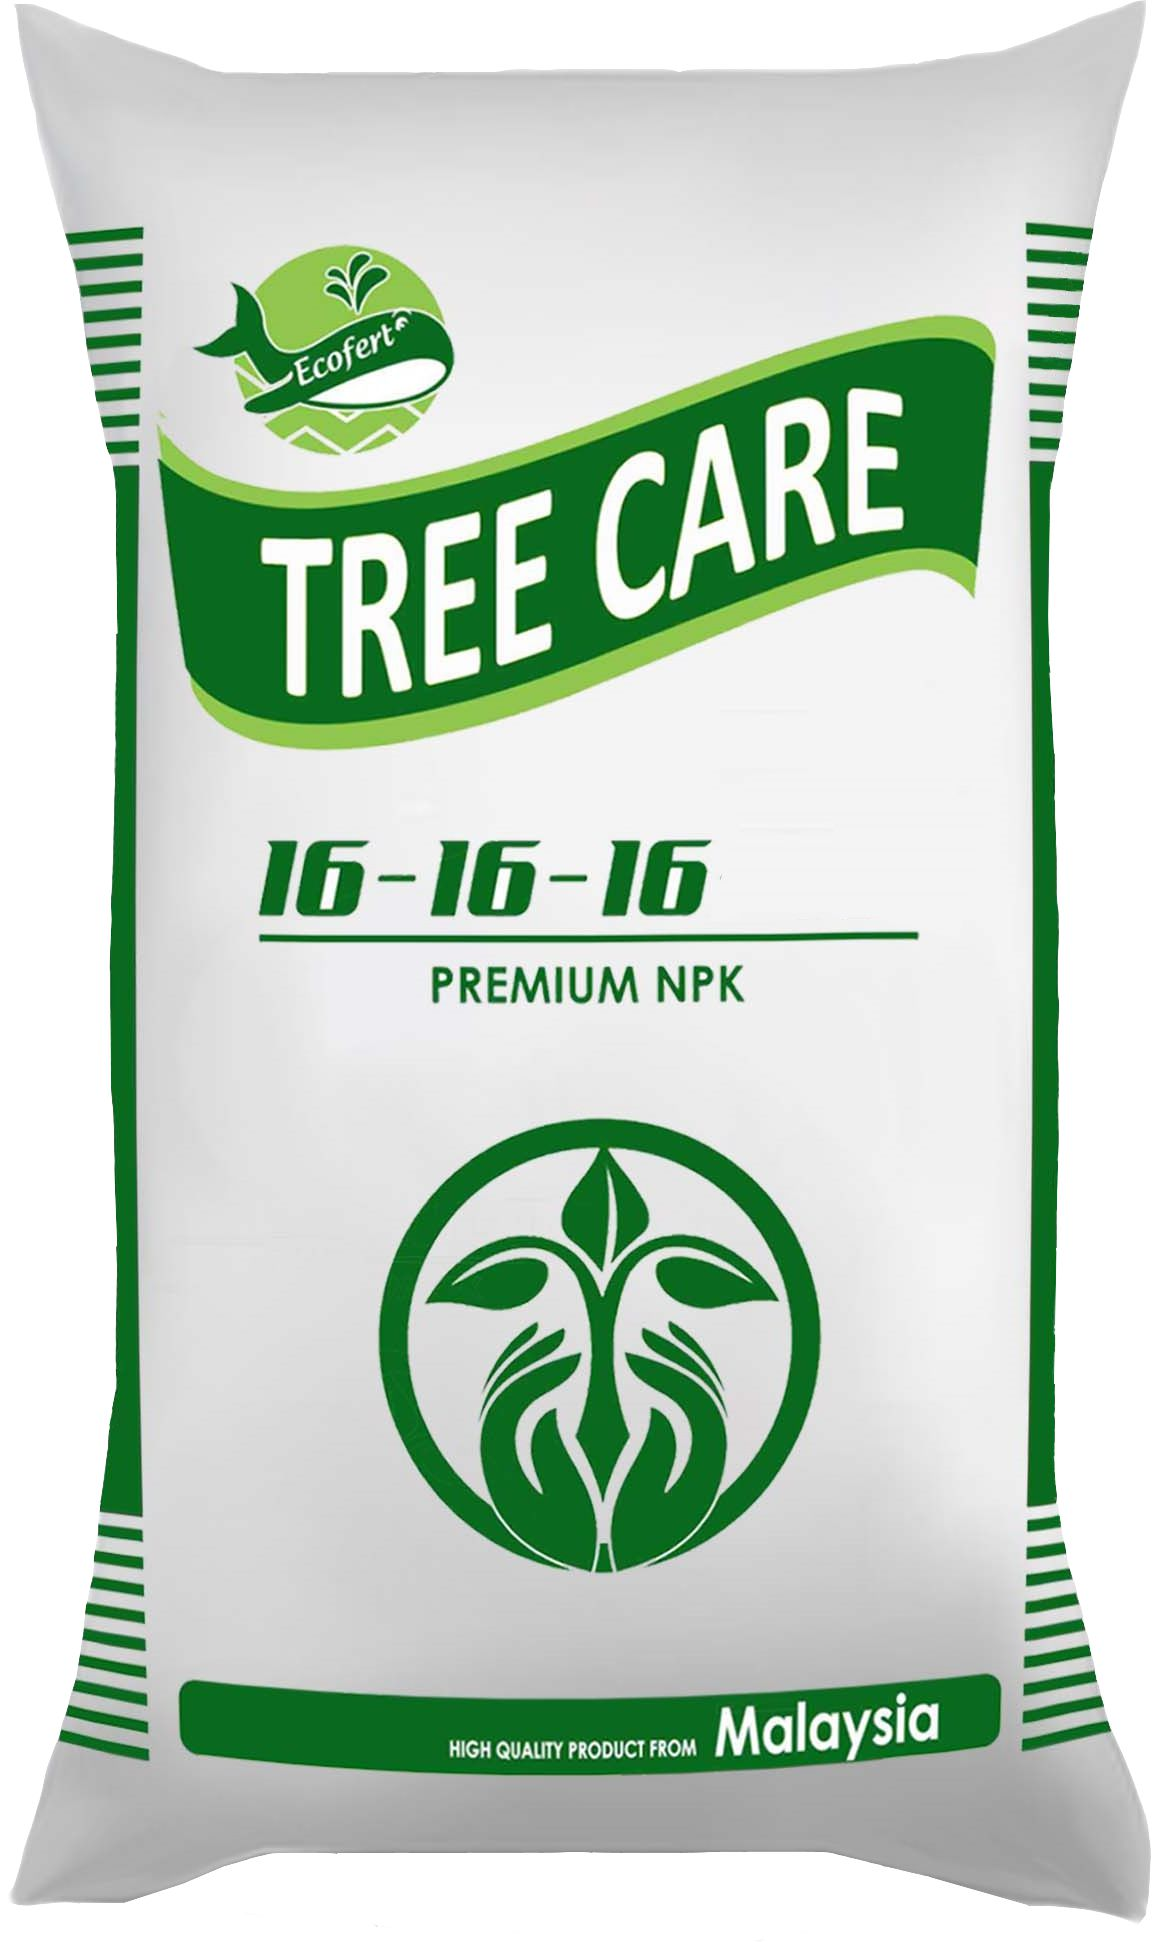 Tree Care 16 - 16 -16 +TE